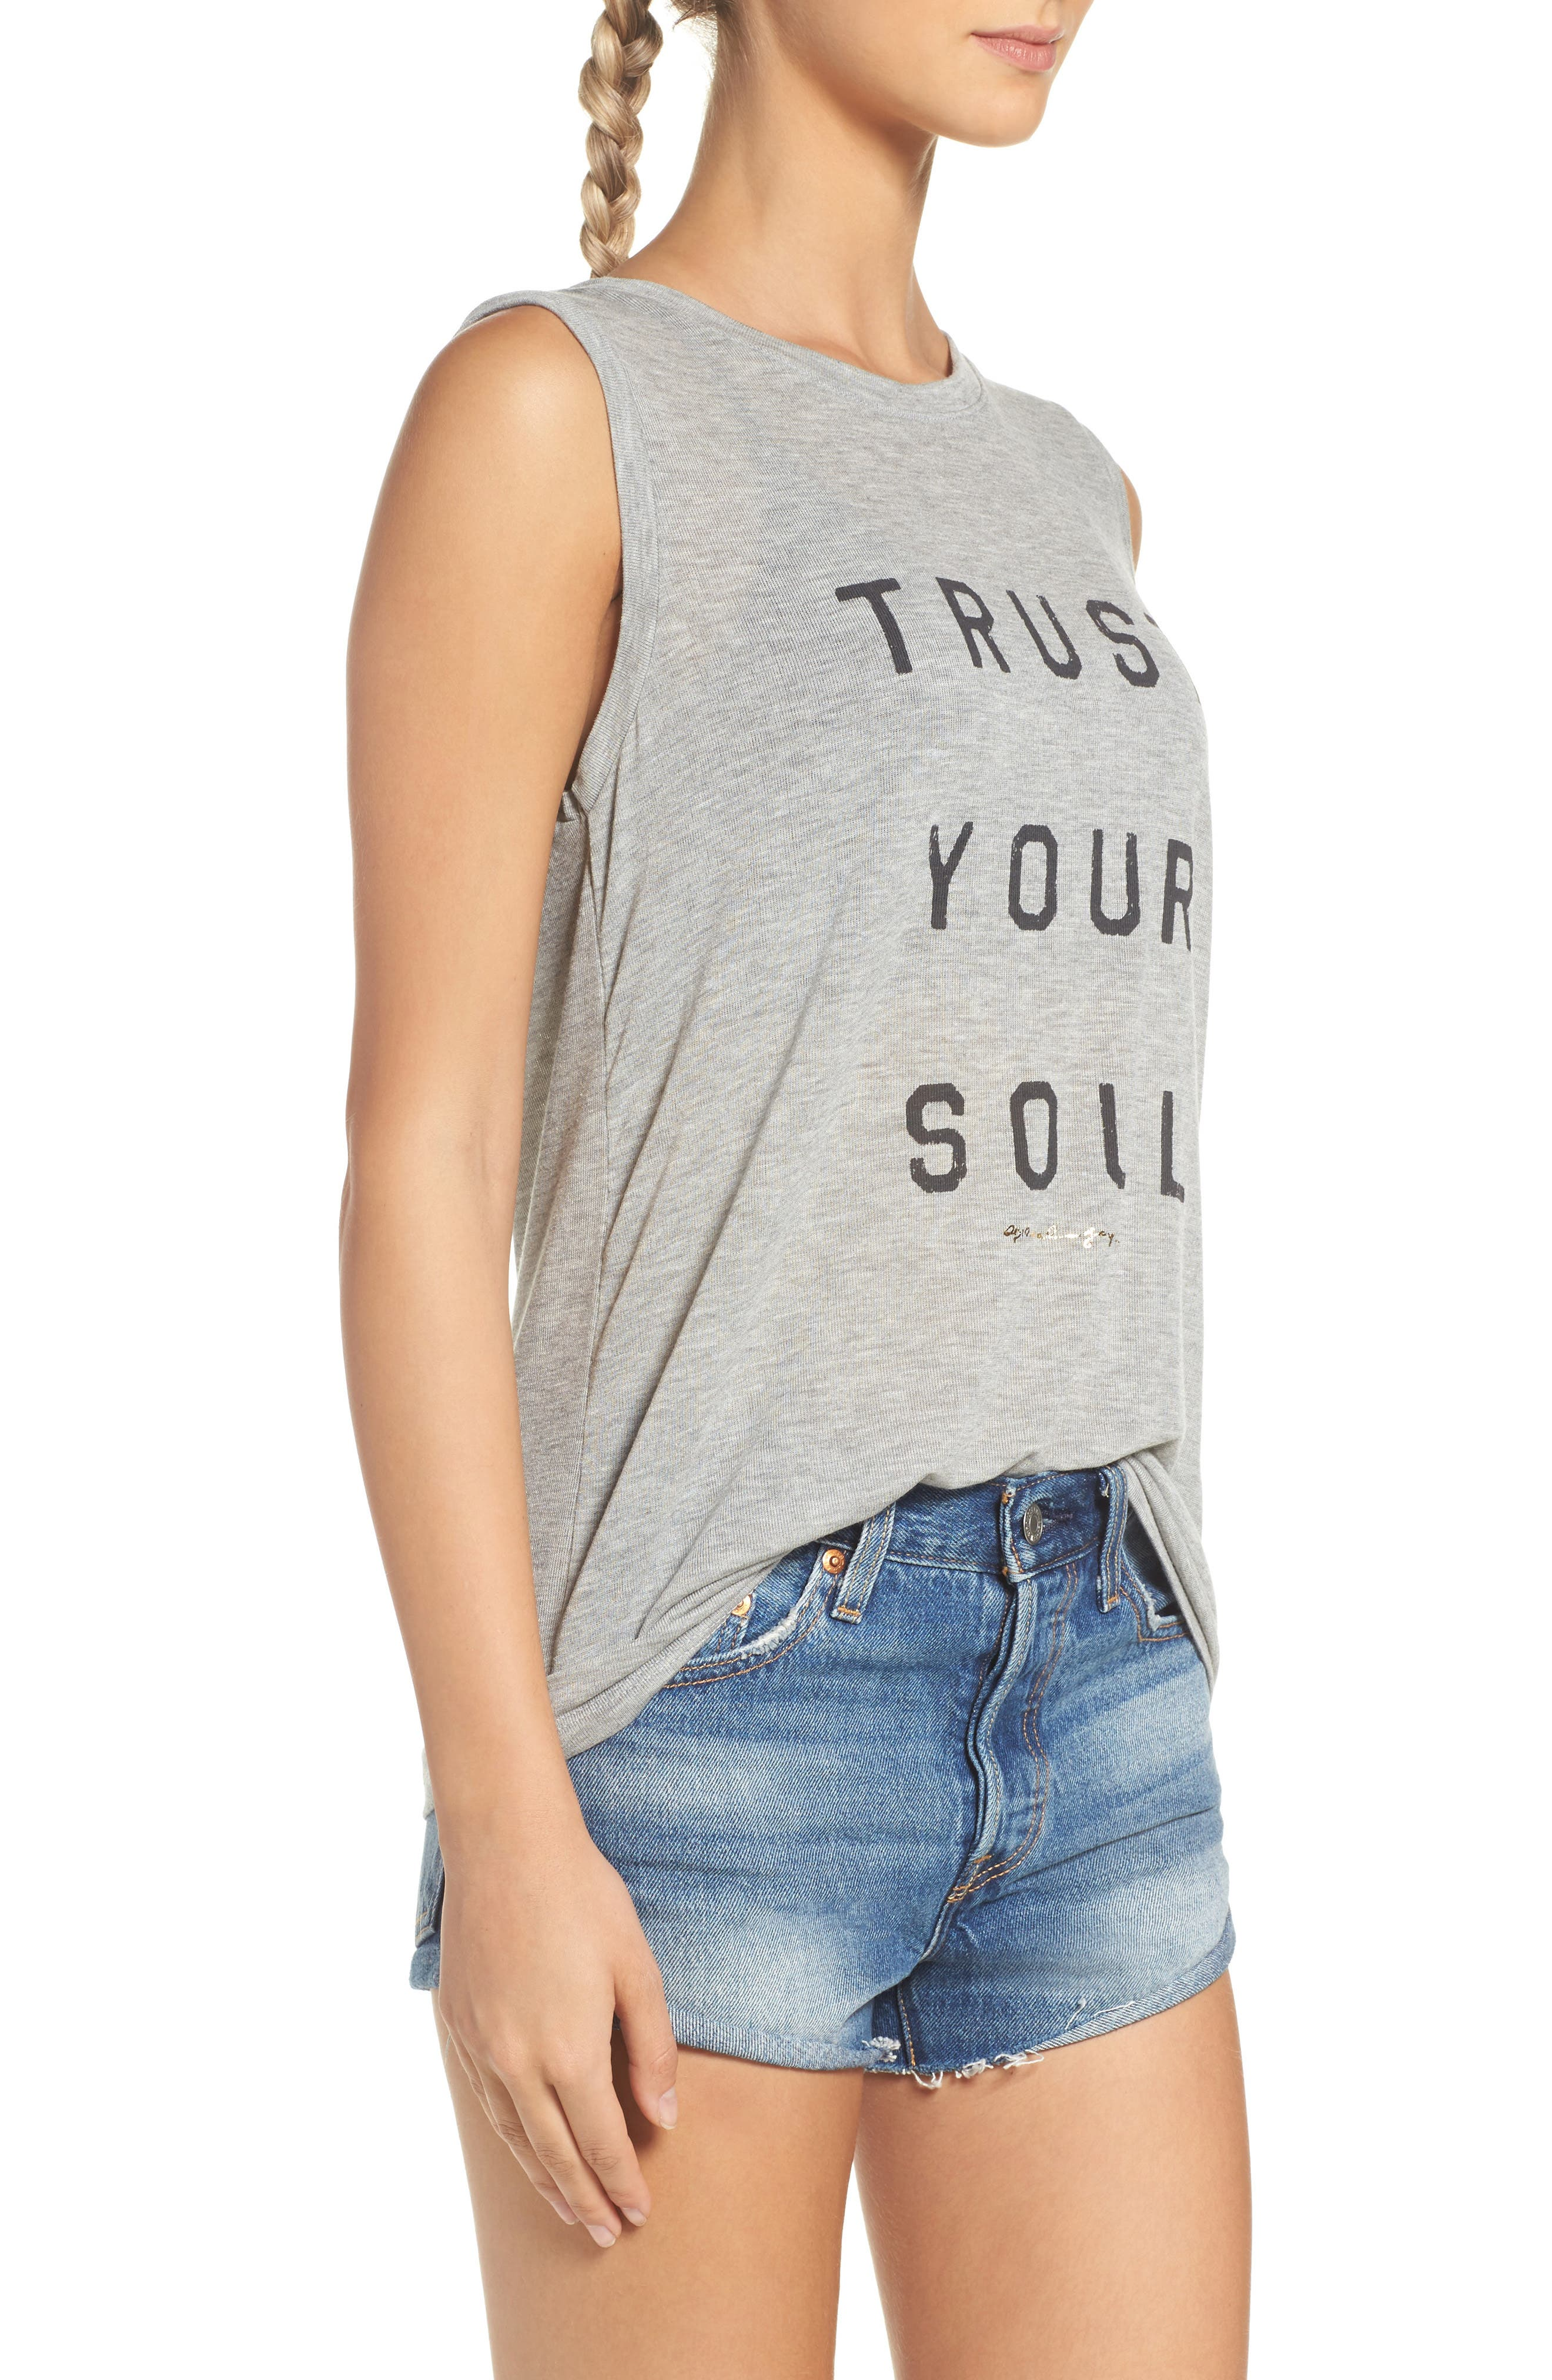 Trust Your Soul Muscle Tee,                             Alternate thumbnail 3, color,                             Heather Grey